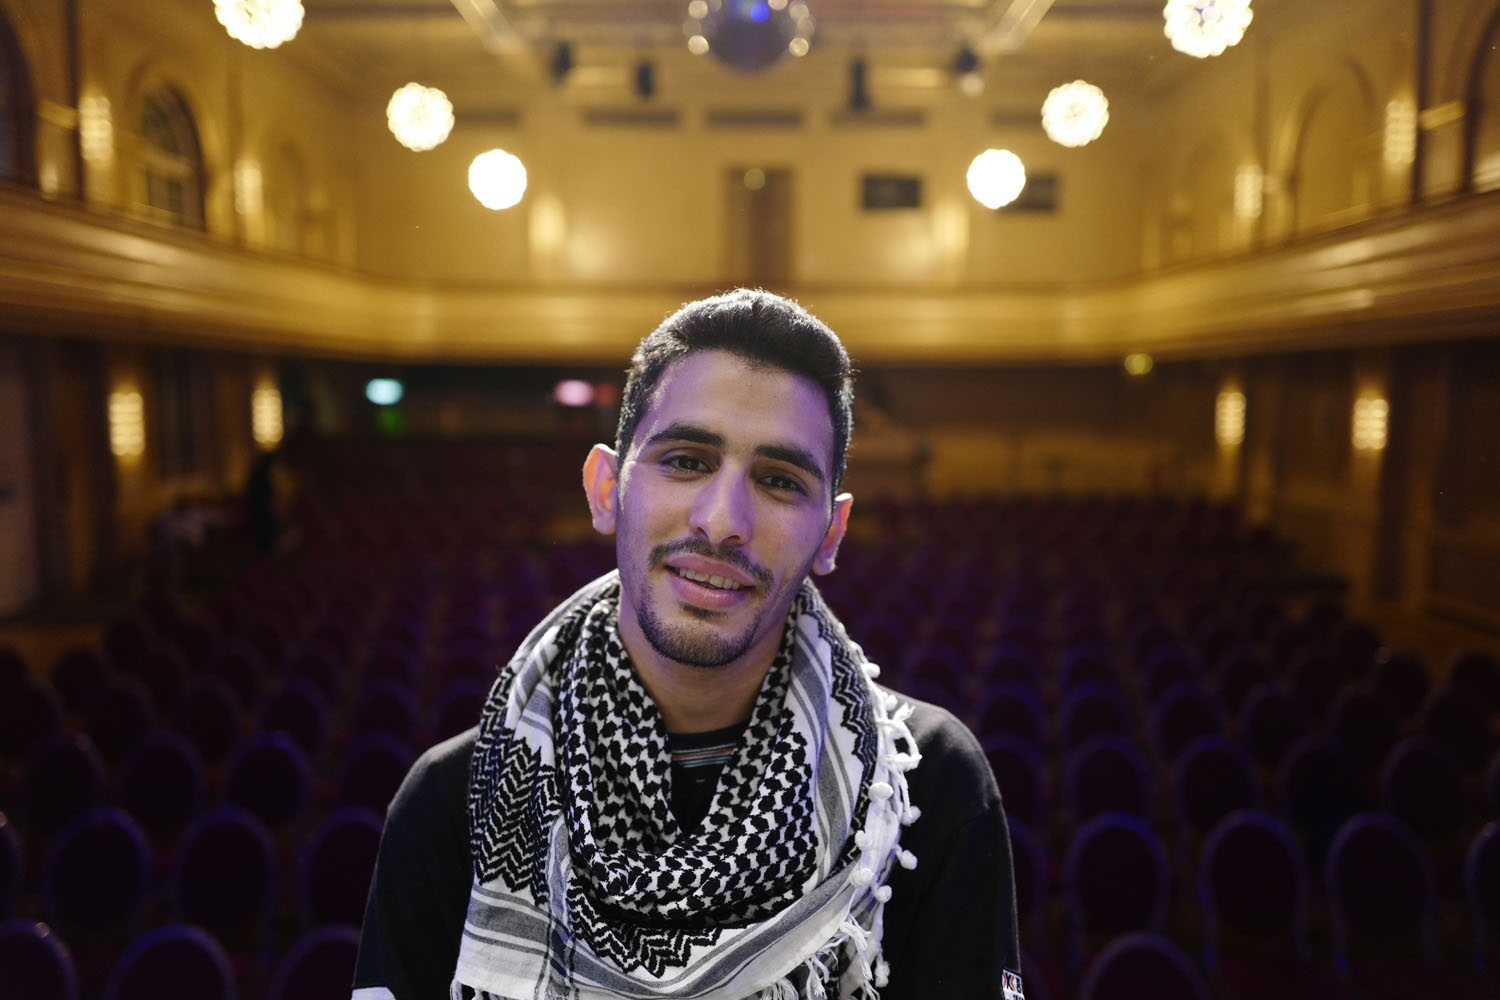 Palestinian/Syrian refugee Ayham Ahmad, also known as the pianist of Yarmouk poses prior to a performance at Berlin's Heimathafen concert hall on May 12, 2016